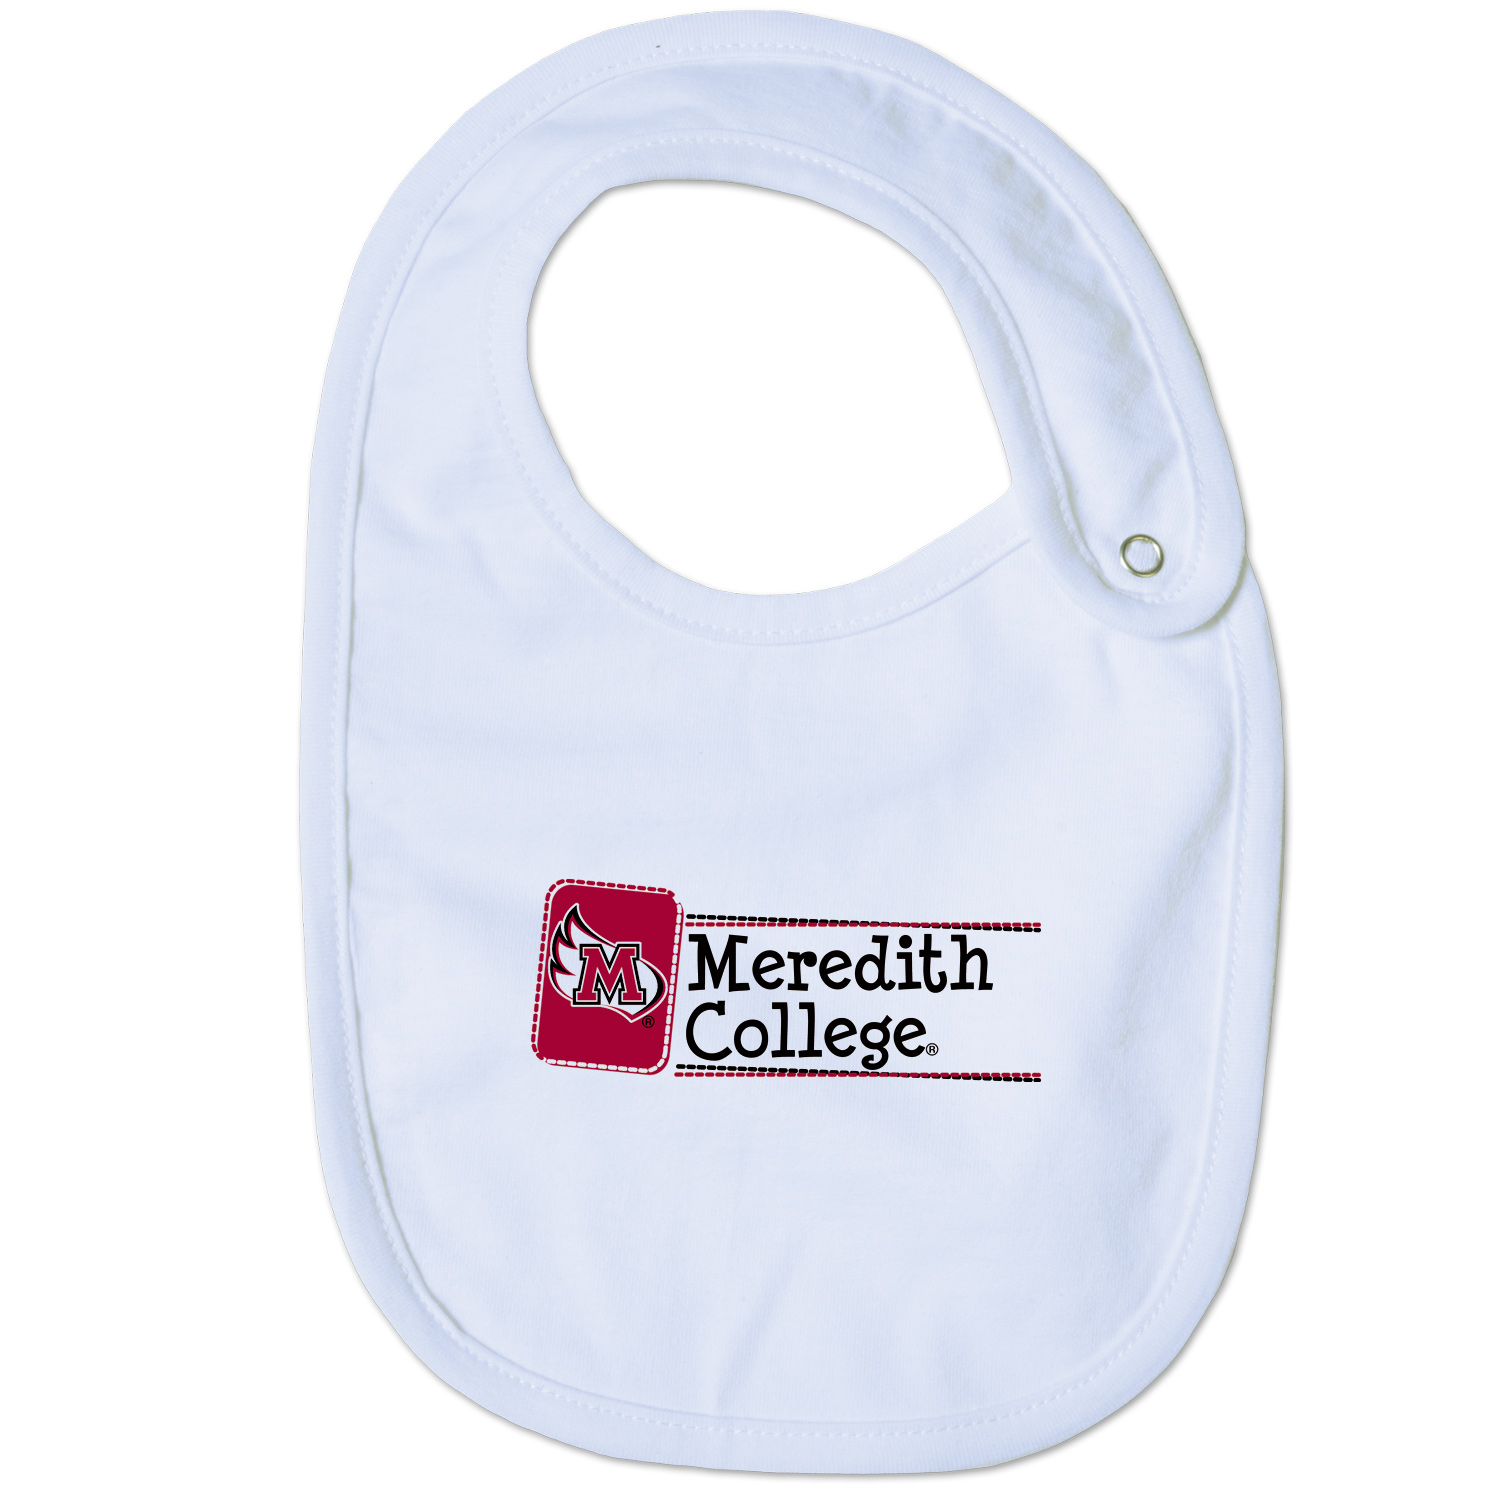 Image for the Bib with Meredith College and M wing w/snap product